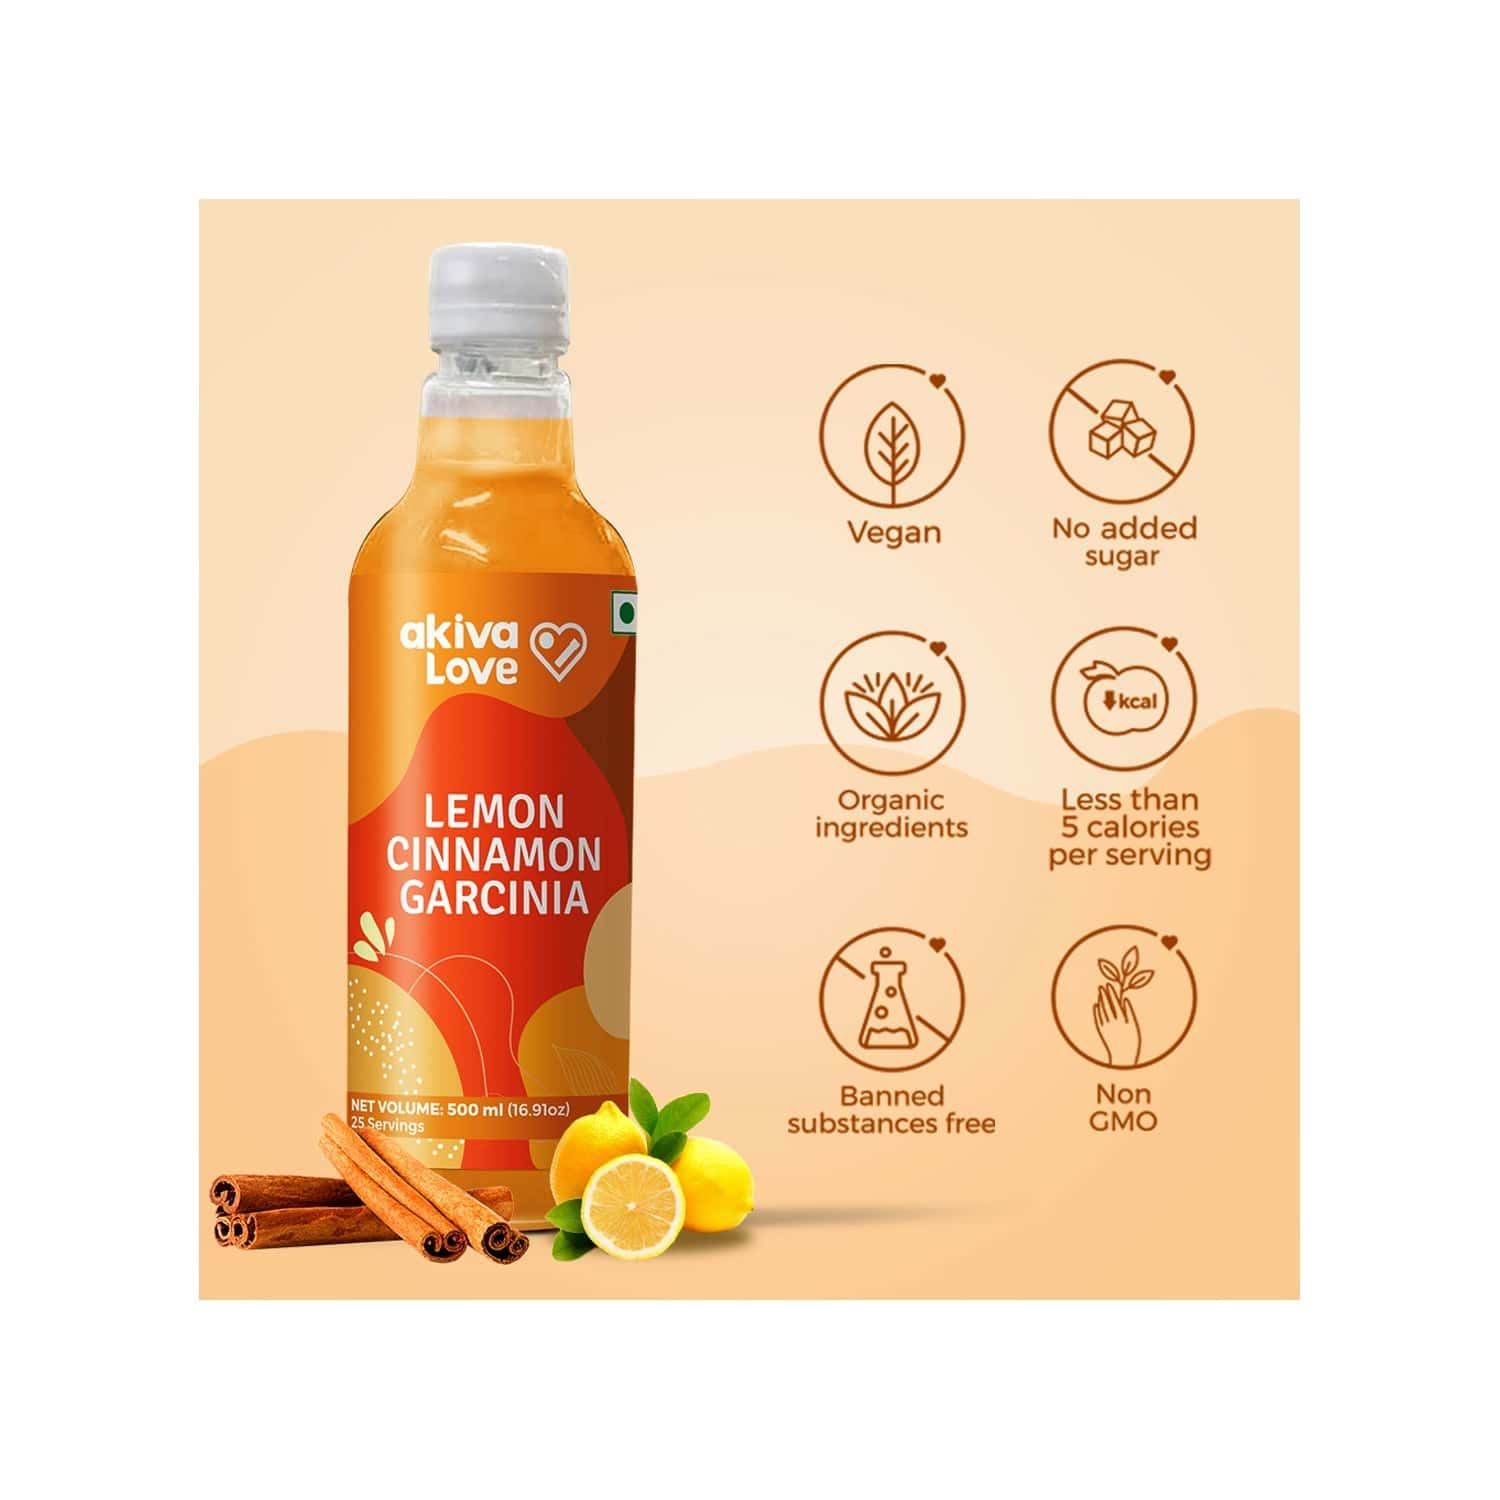 Akiva Love Lemon Cinnamon Garcinia Juice ( Concentrated ) For Weight Loss - 500ml